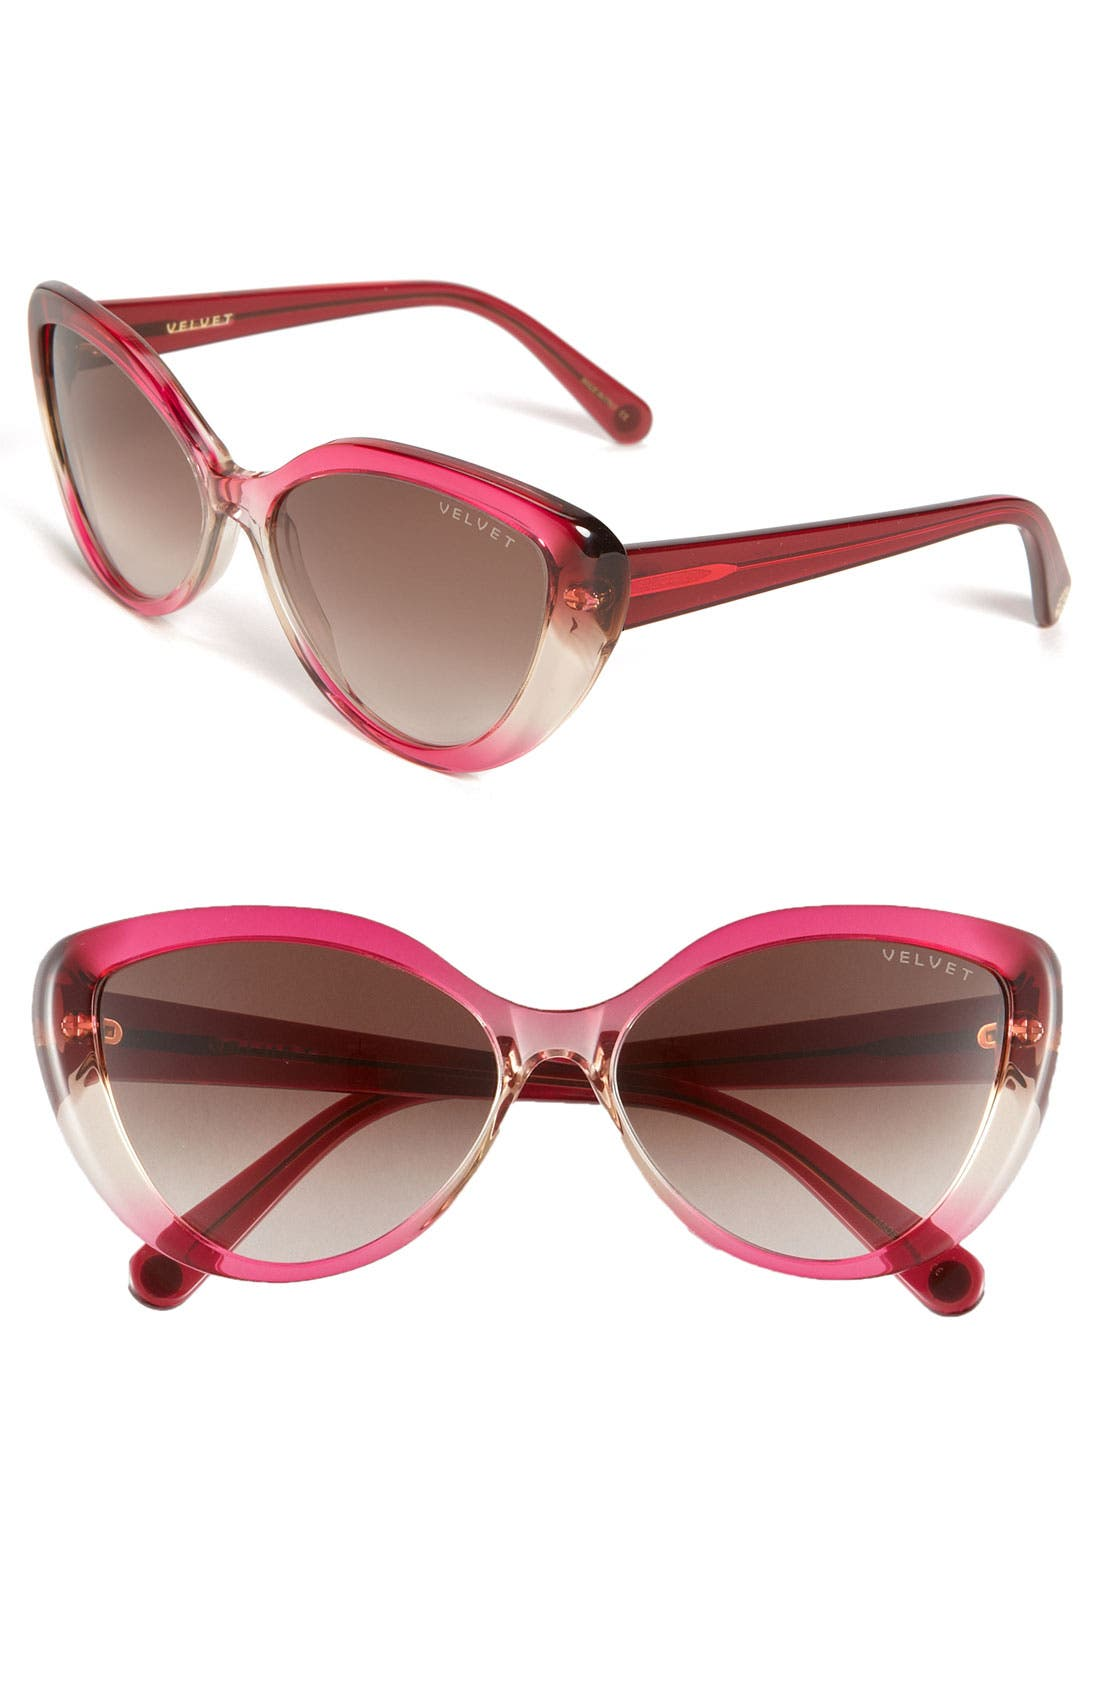 Alternate Image 1 Selected - Velvet Eyewear 'Joie' Sunglasses